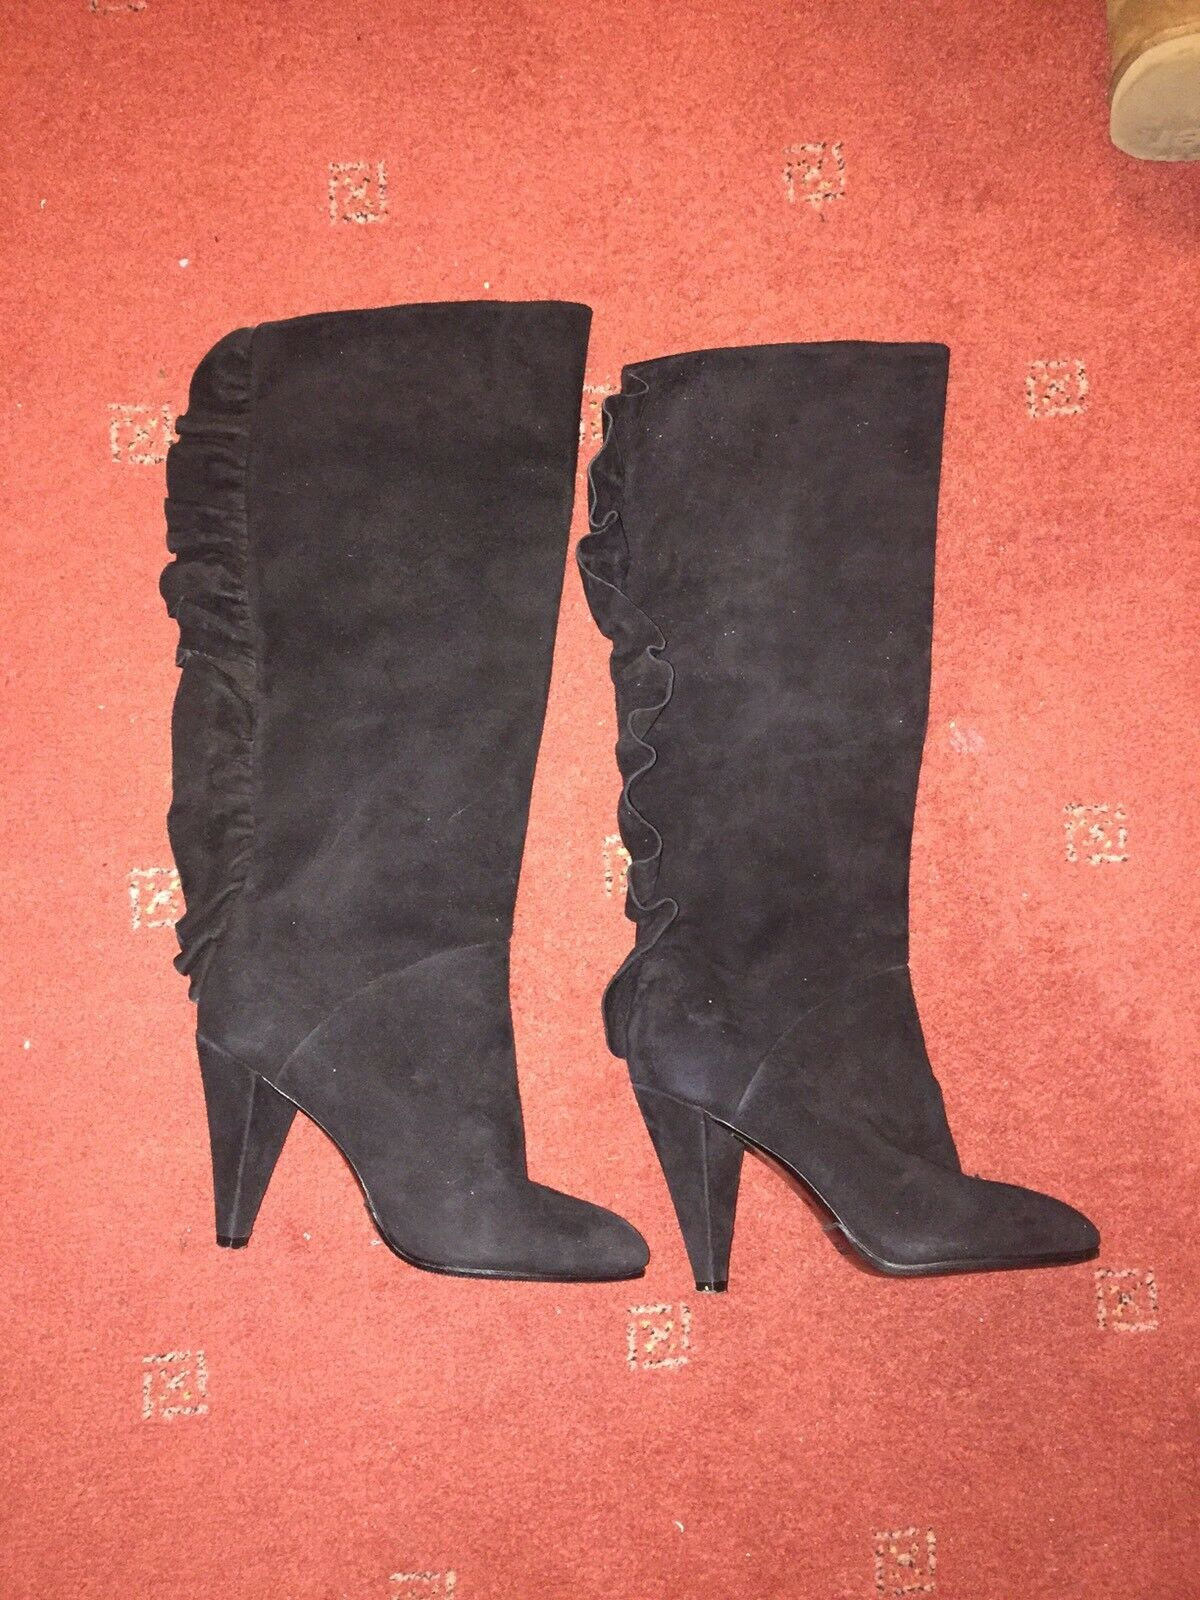 Stunning MARC by MARC JACOBS Black Suede Boots UK 4 EU 36